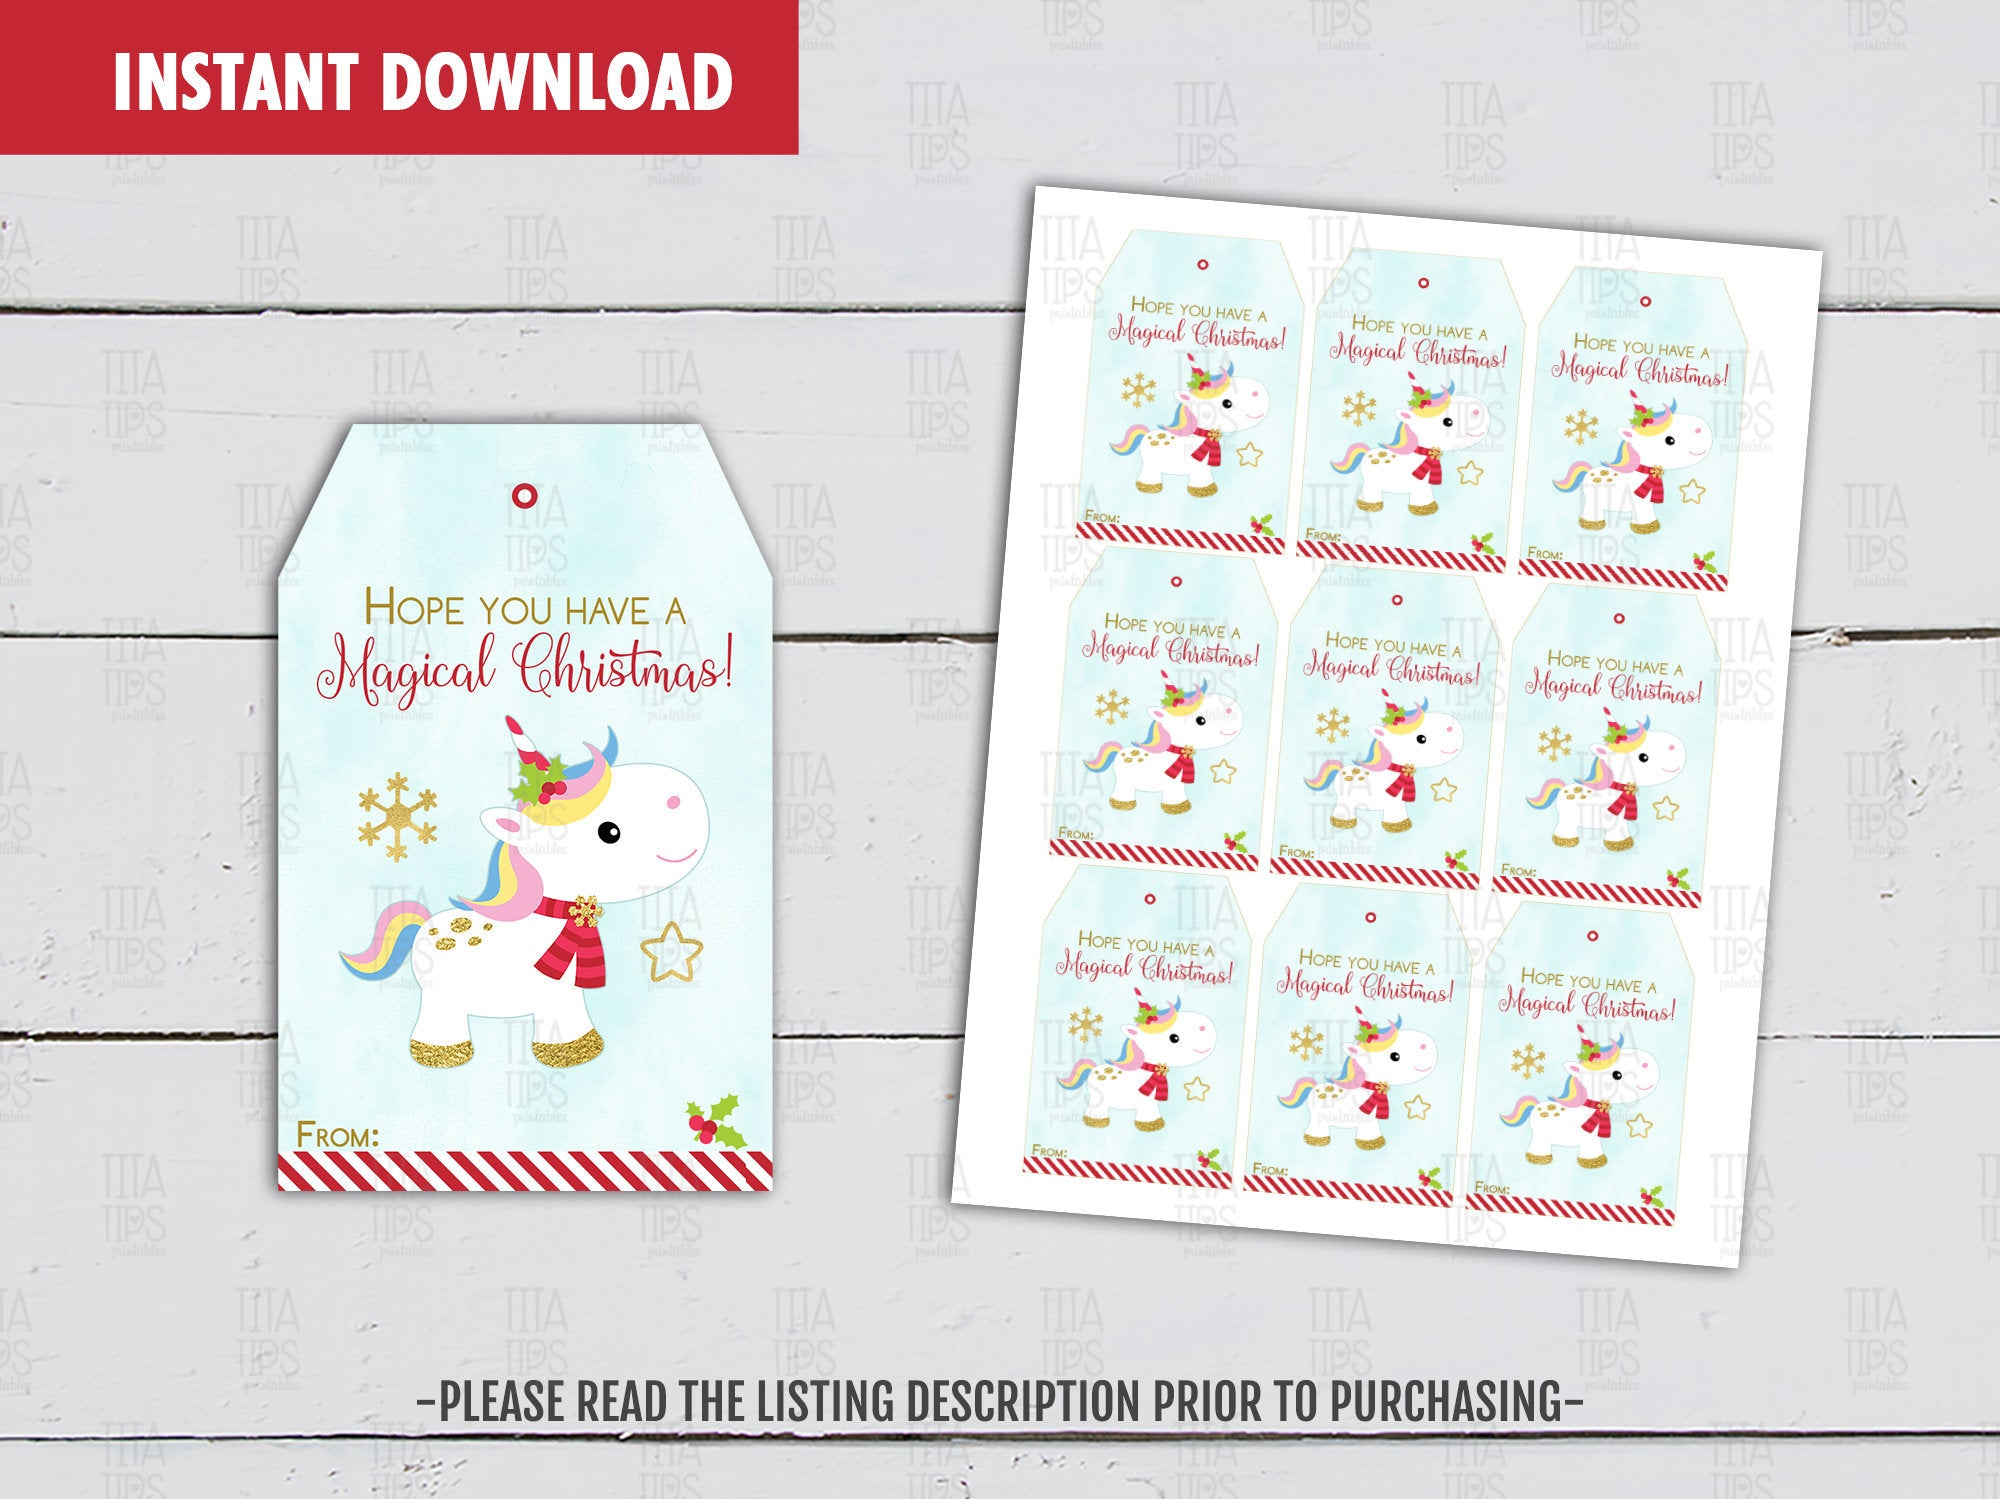 Hope you have a Magical Christmas Gift Tag,  Printable Unicorn Card, Holidays Favor Tags, Instant Download - TitaTipsPrintables